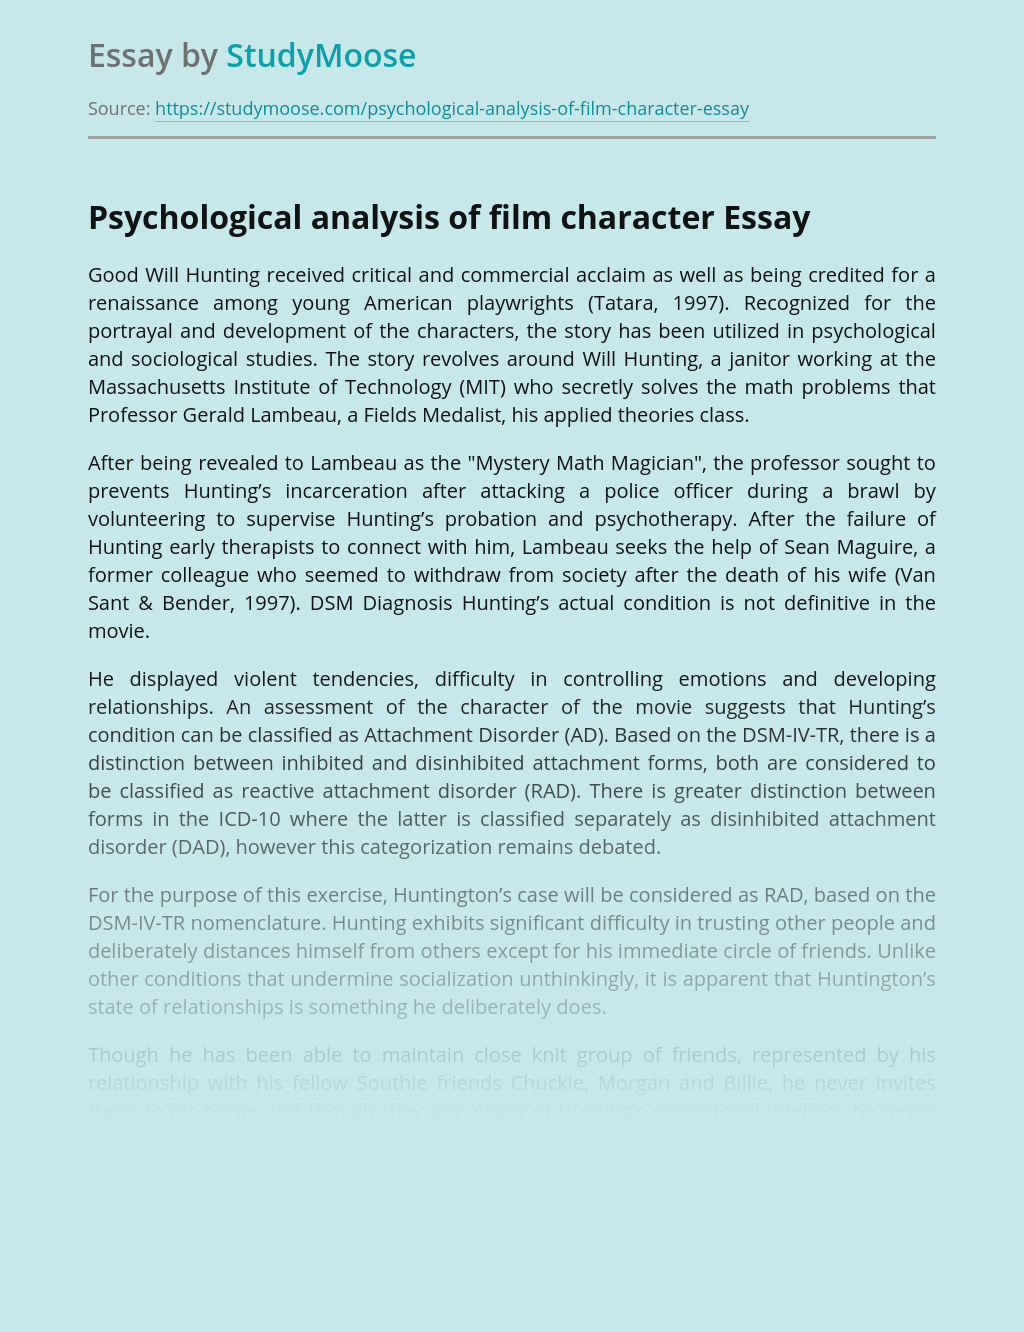 Psychological analysis of film character